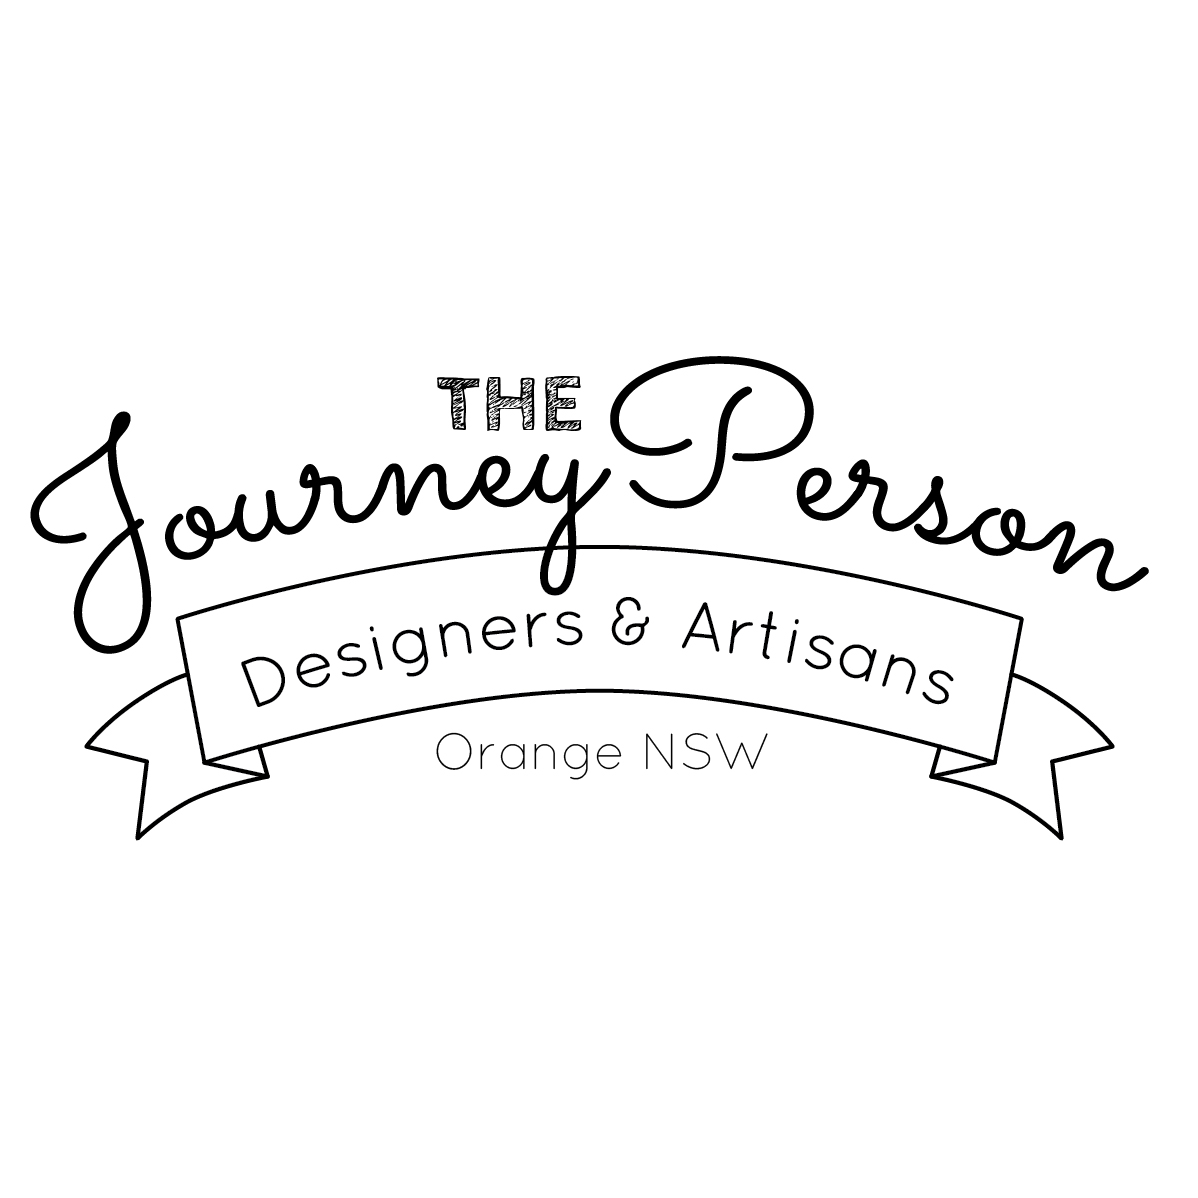 I am a part of The JourneyPerson, a group of designers & artisans in Orange, NSW.